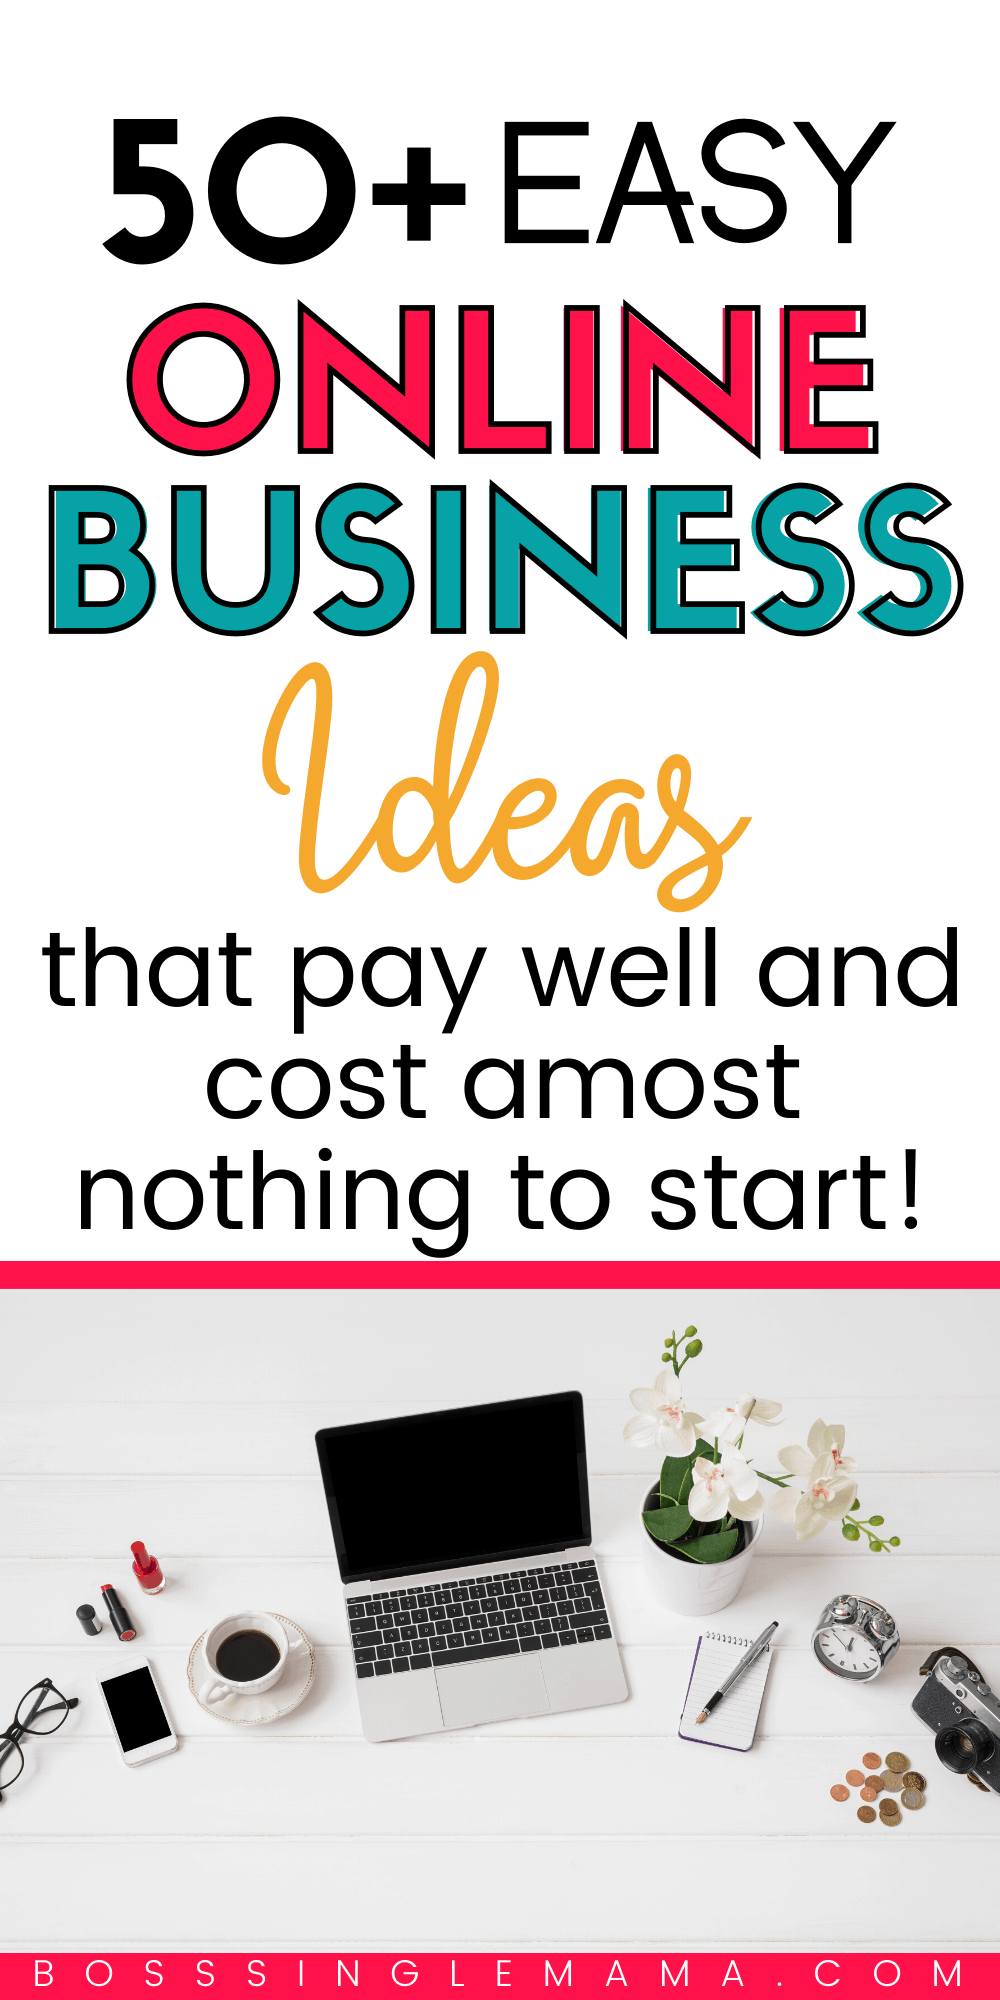 easy online business ideas